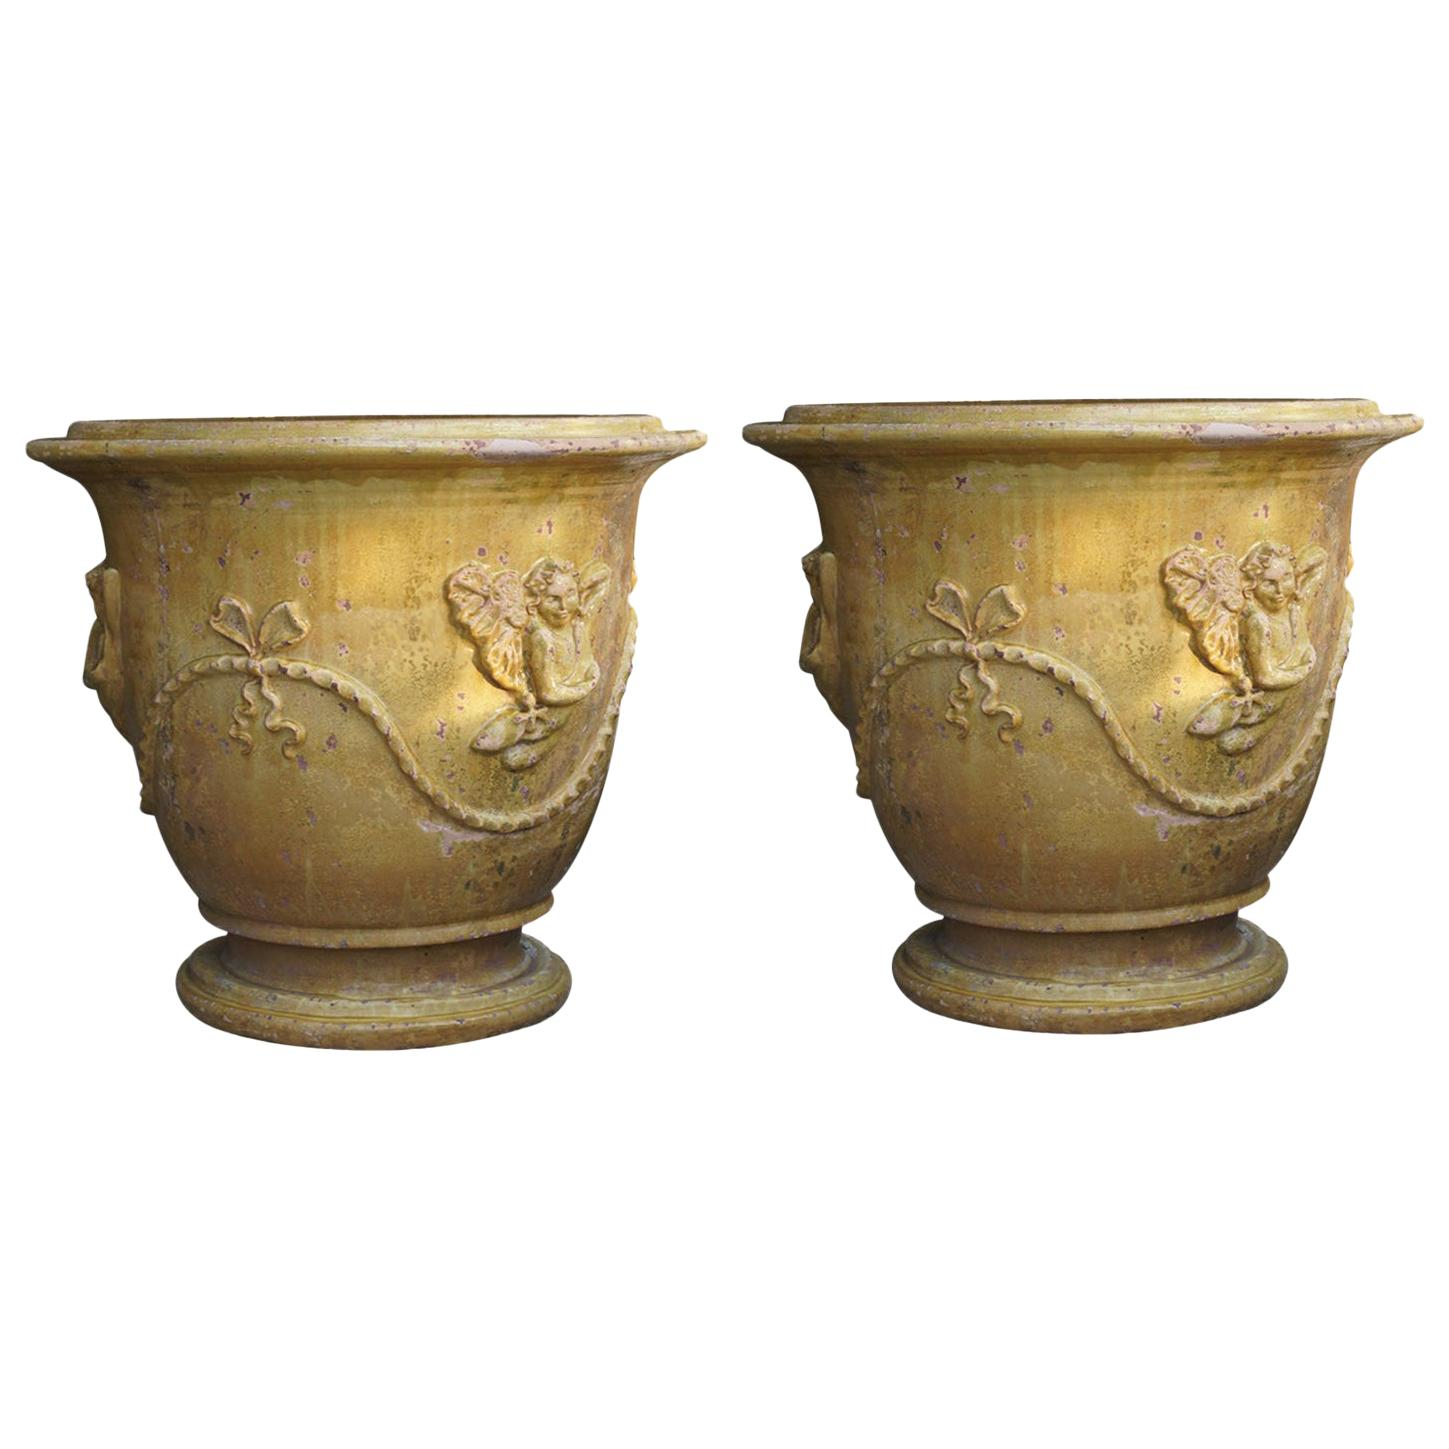 20th Century Pair of French Yellow Anduze Planter Planters from Provence